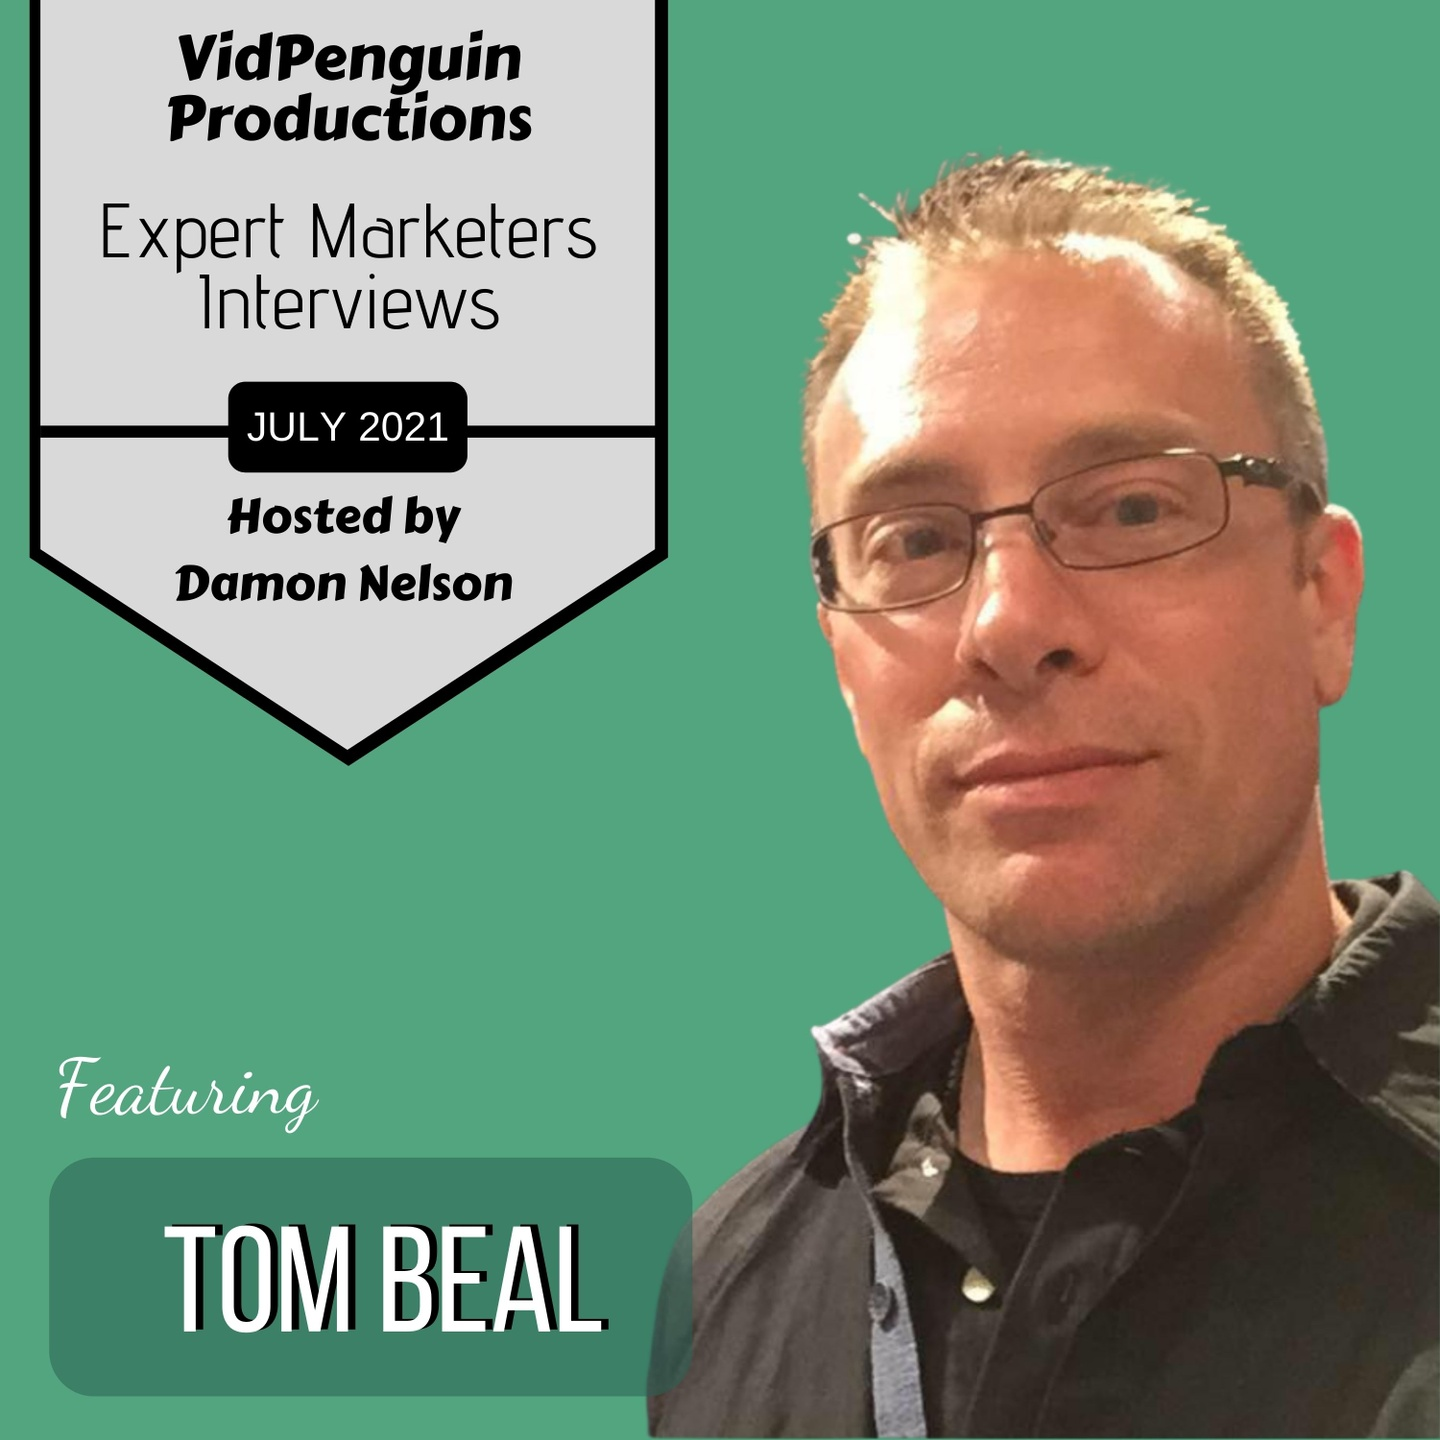 Tom Beal interview